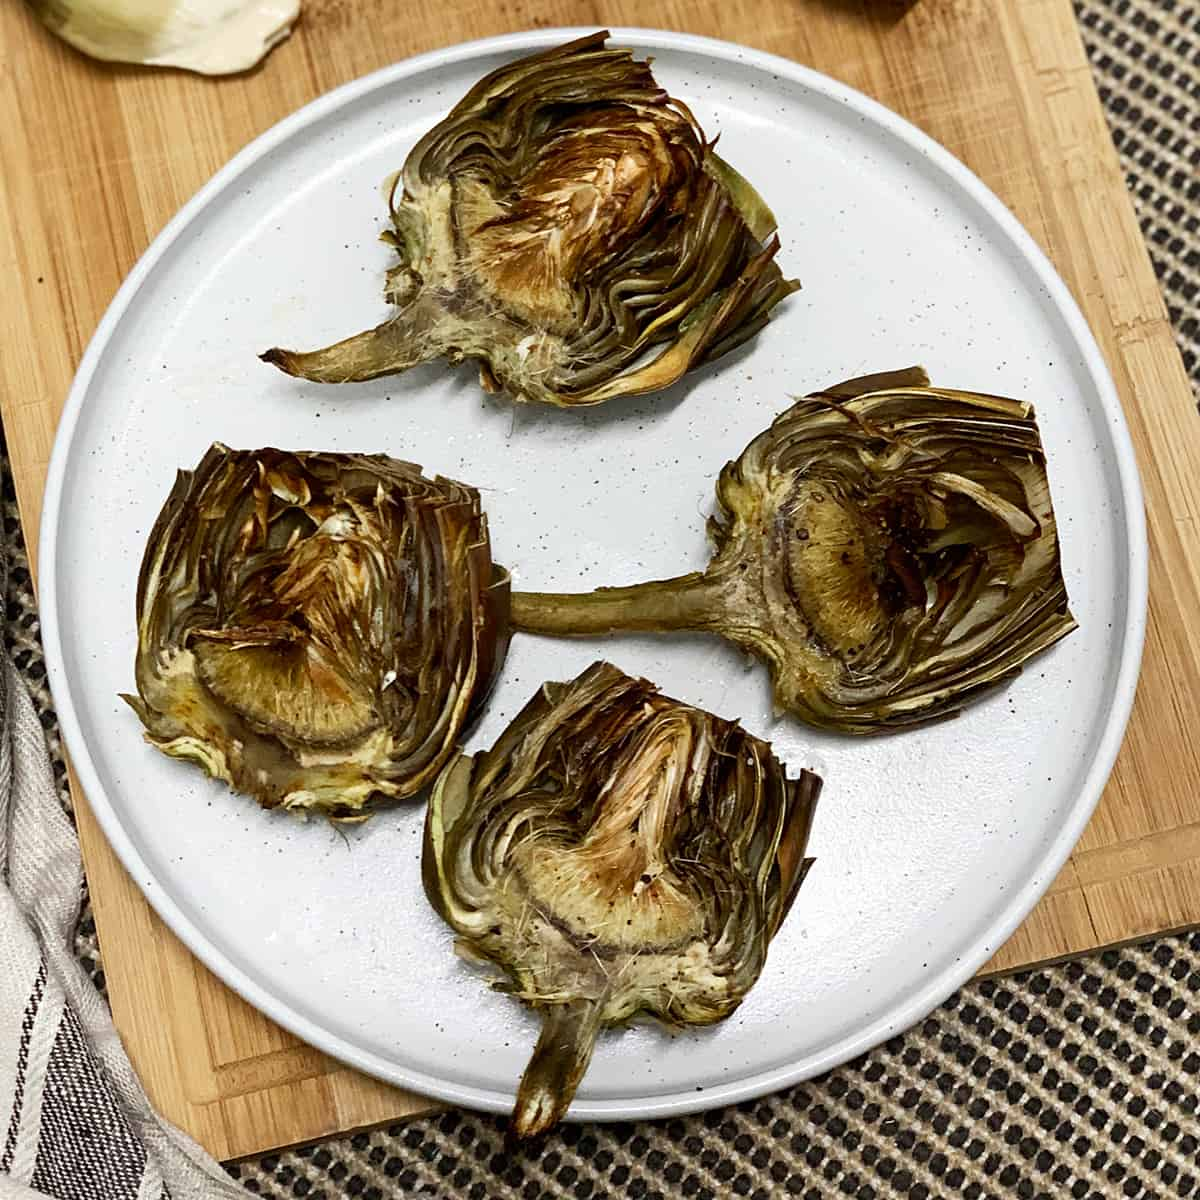 A plate serving four roasted artichokes